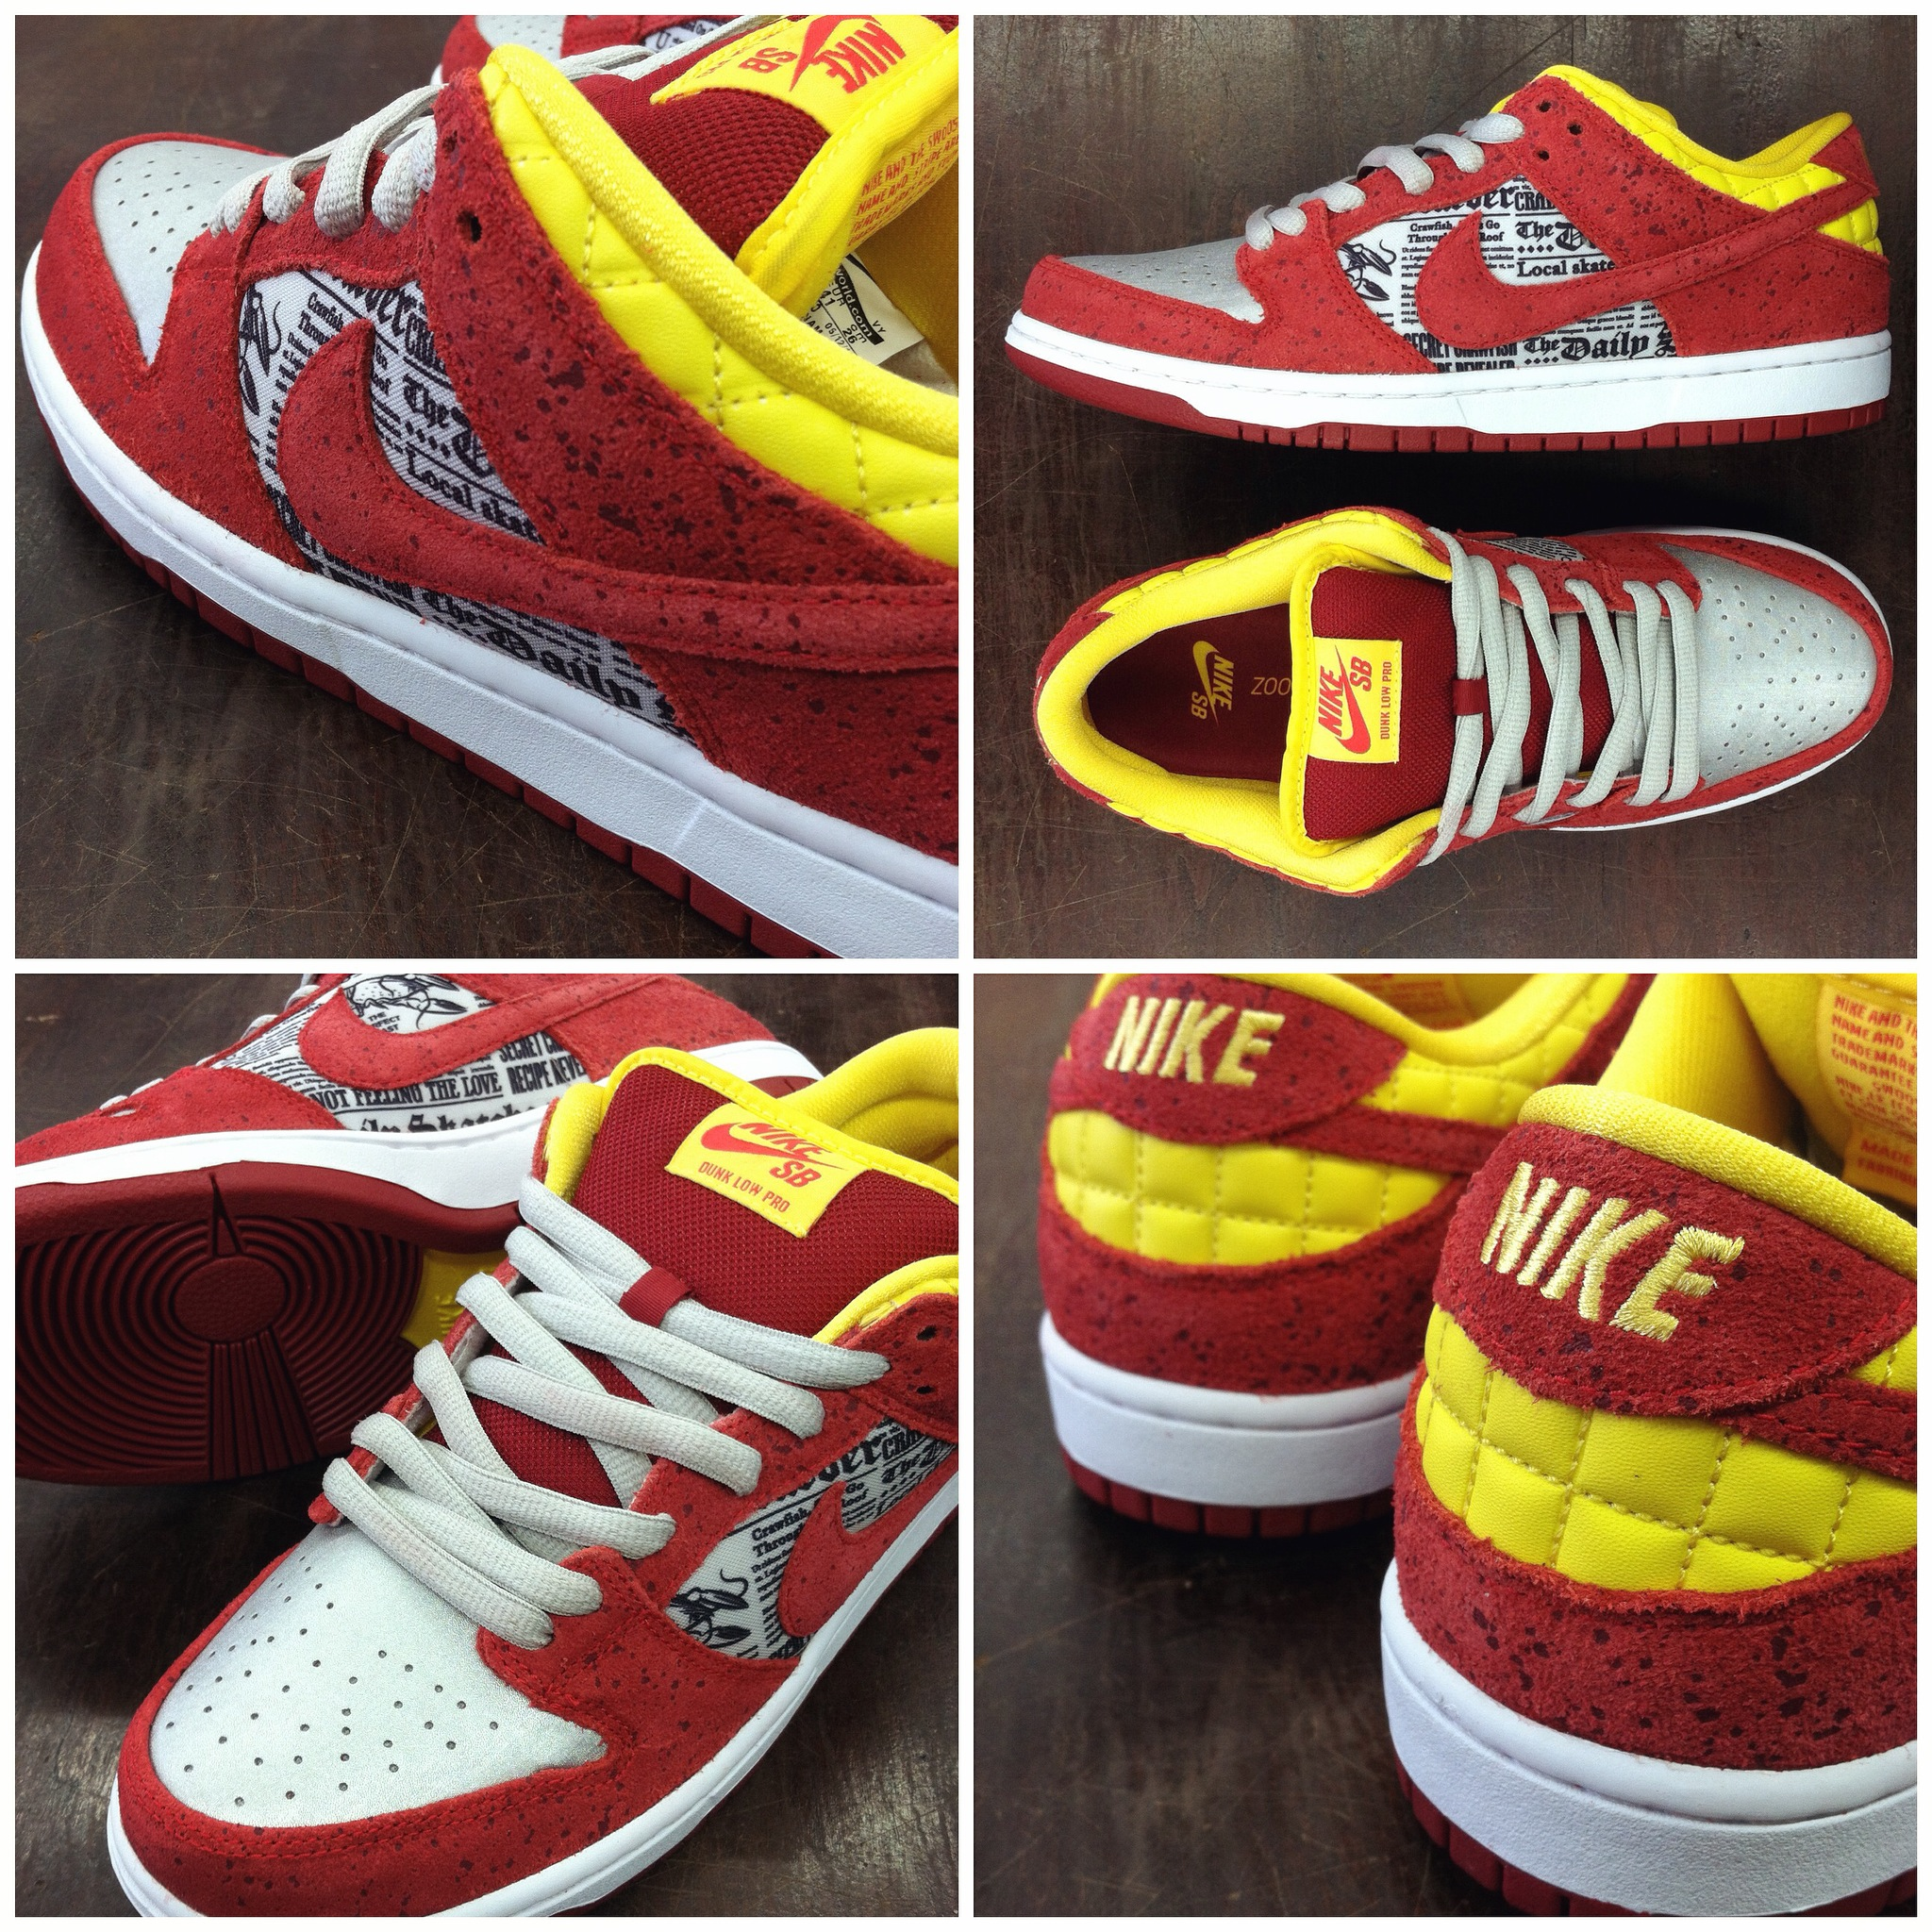 """The Nike SB x Rukus skateshop """"crawfish"""" Dunk Low collab is releasing this Saturday at our West Springfield location."""